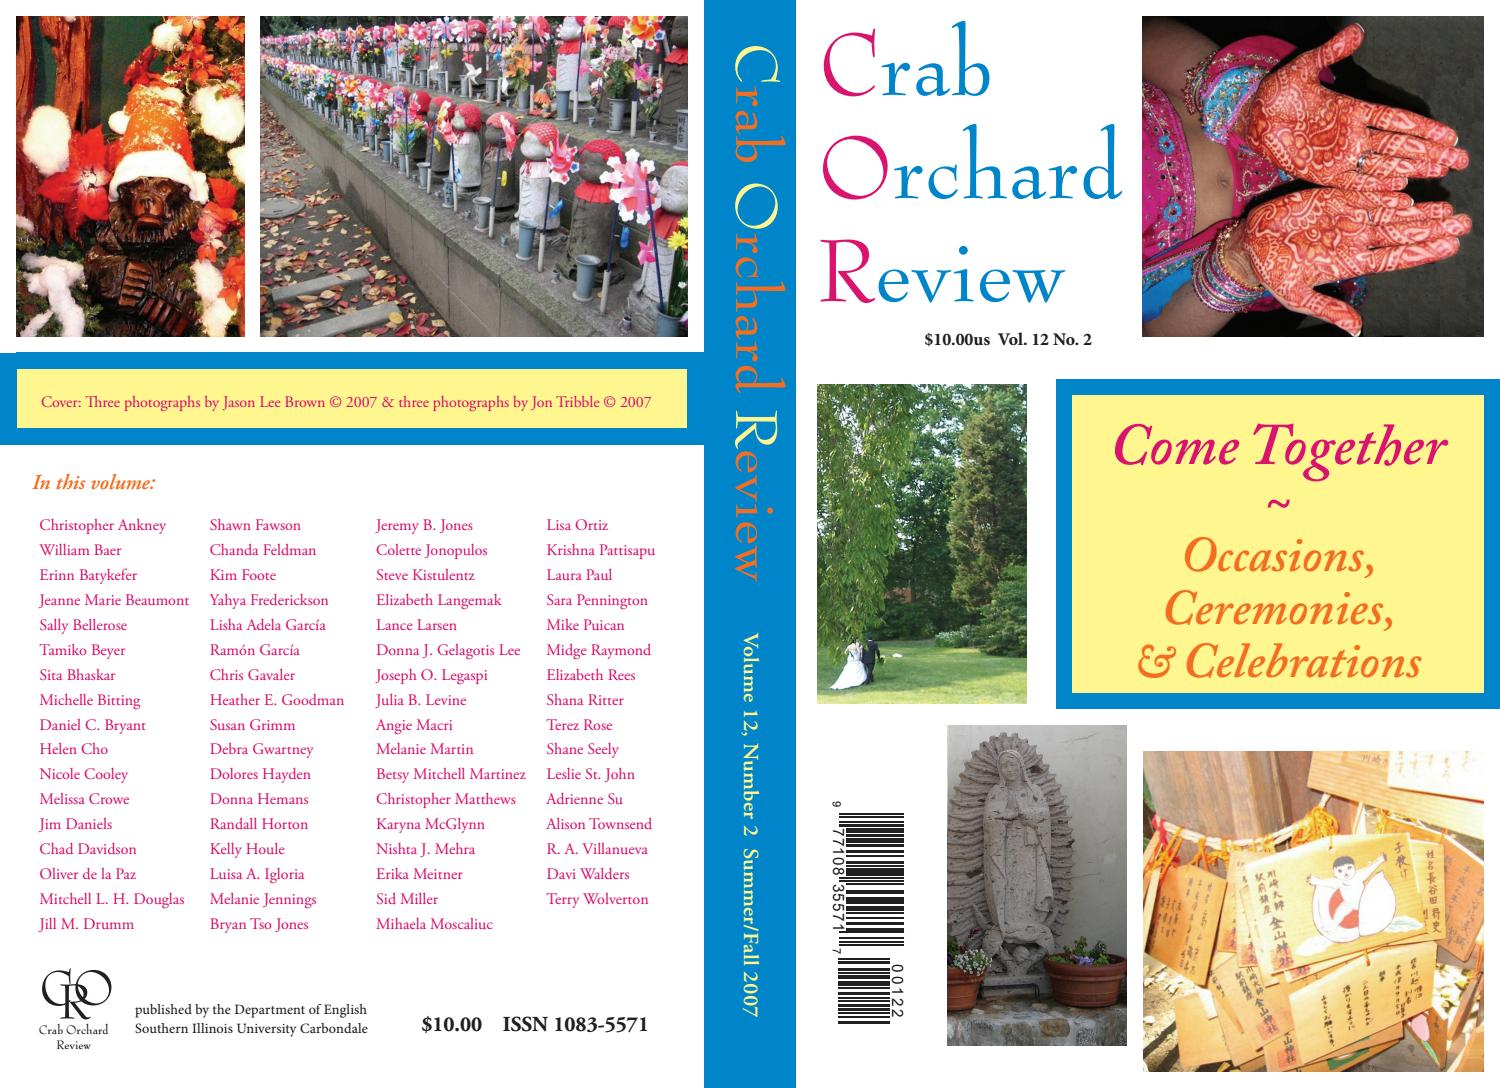 c6882bb2b026c Crab Orchard Review Vol 12 No 2 S/F 2007 by Crab Orchard Review - issuu